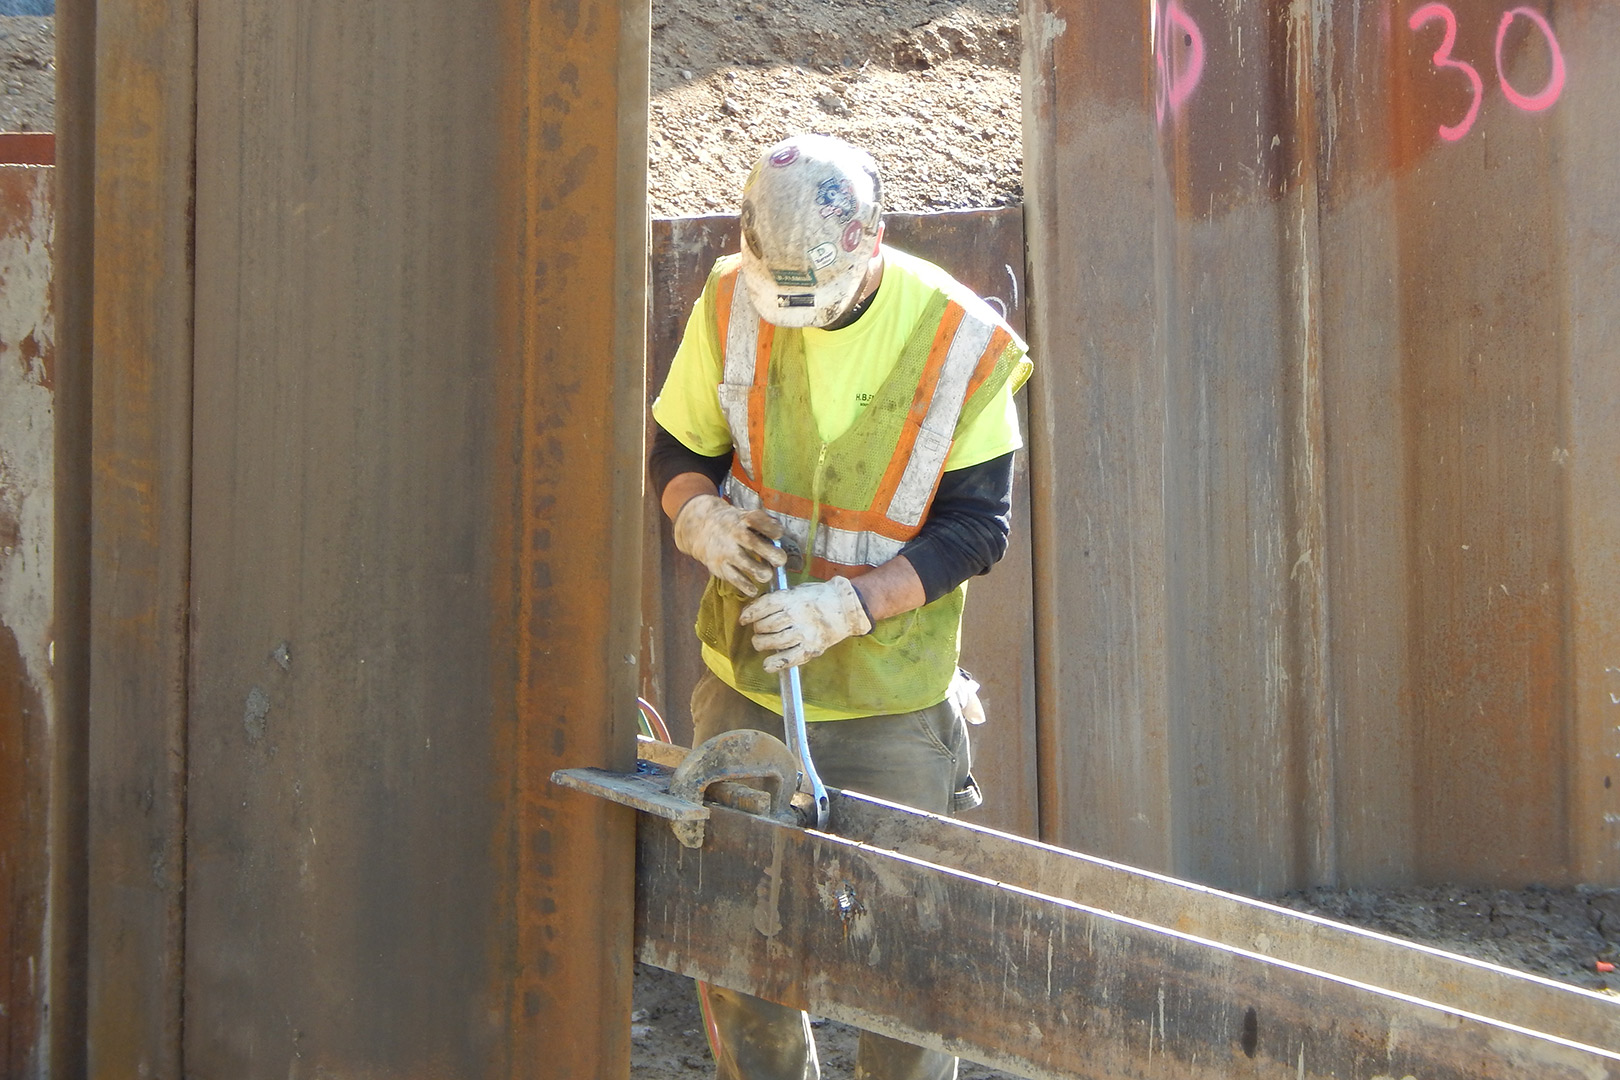 An employee of South Portland subcontractor H.B. Fleming tightens a clamp holding a sheet pile in place on May 6. (Doug Hubley/Bates College)